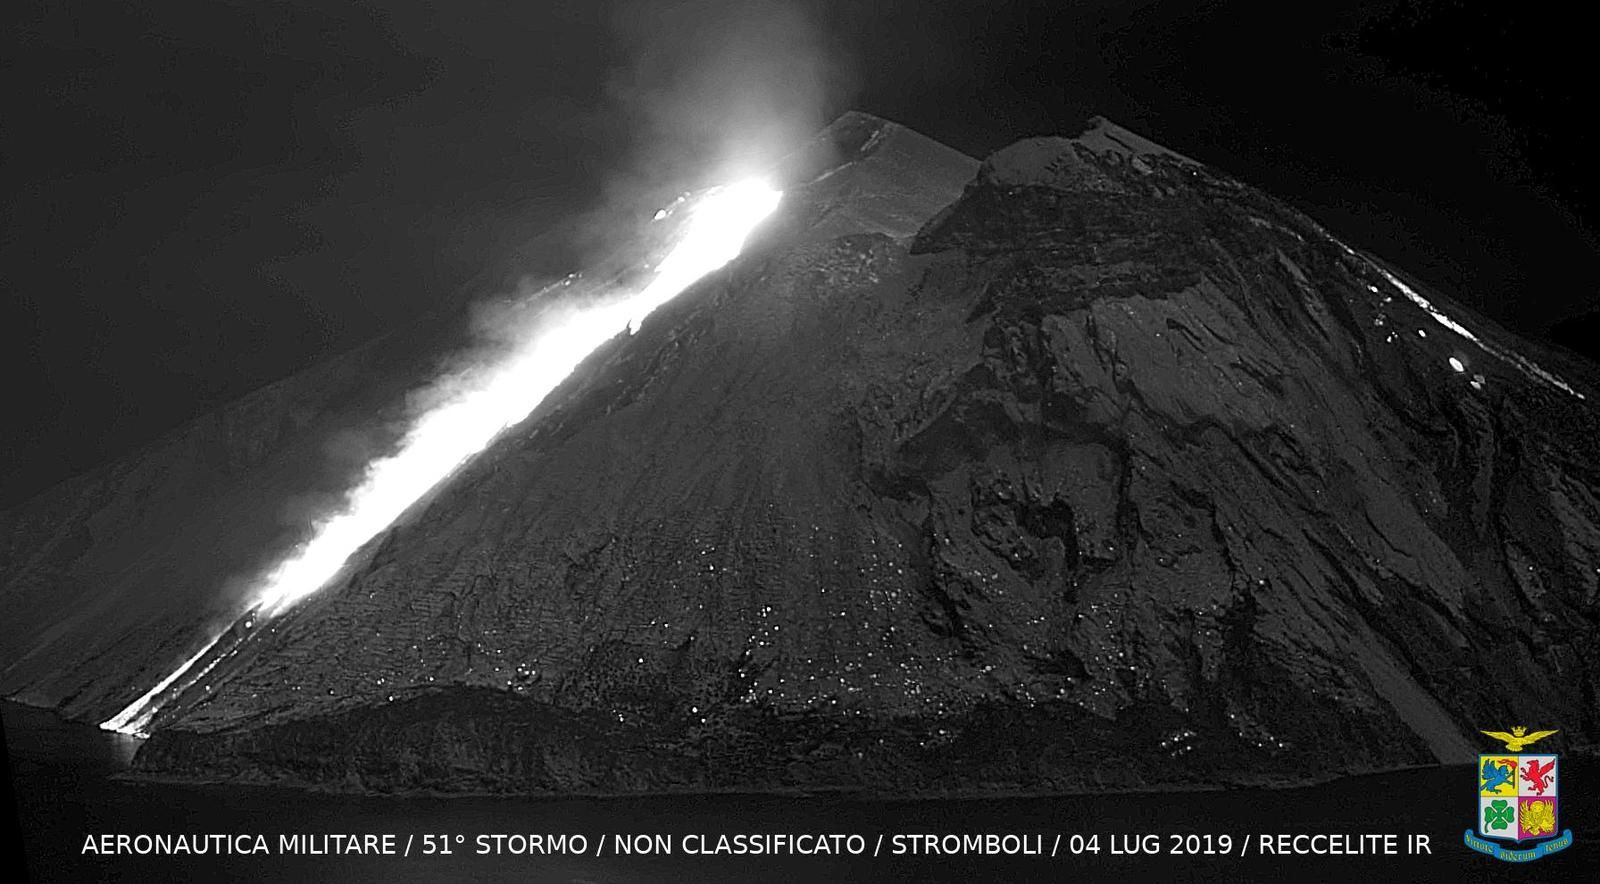 Stromboli - images in IR put online by the Aeronautica Militare - Reccelite IR. on the 04.07.2019